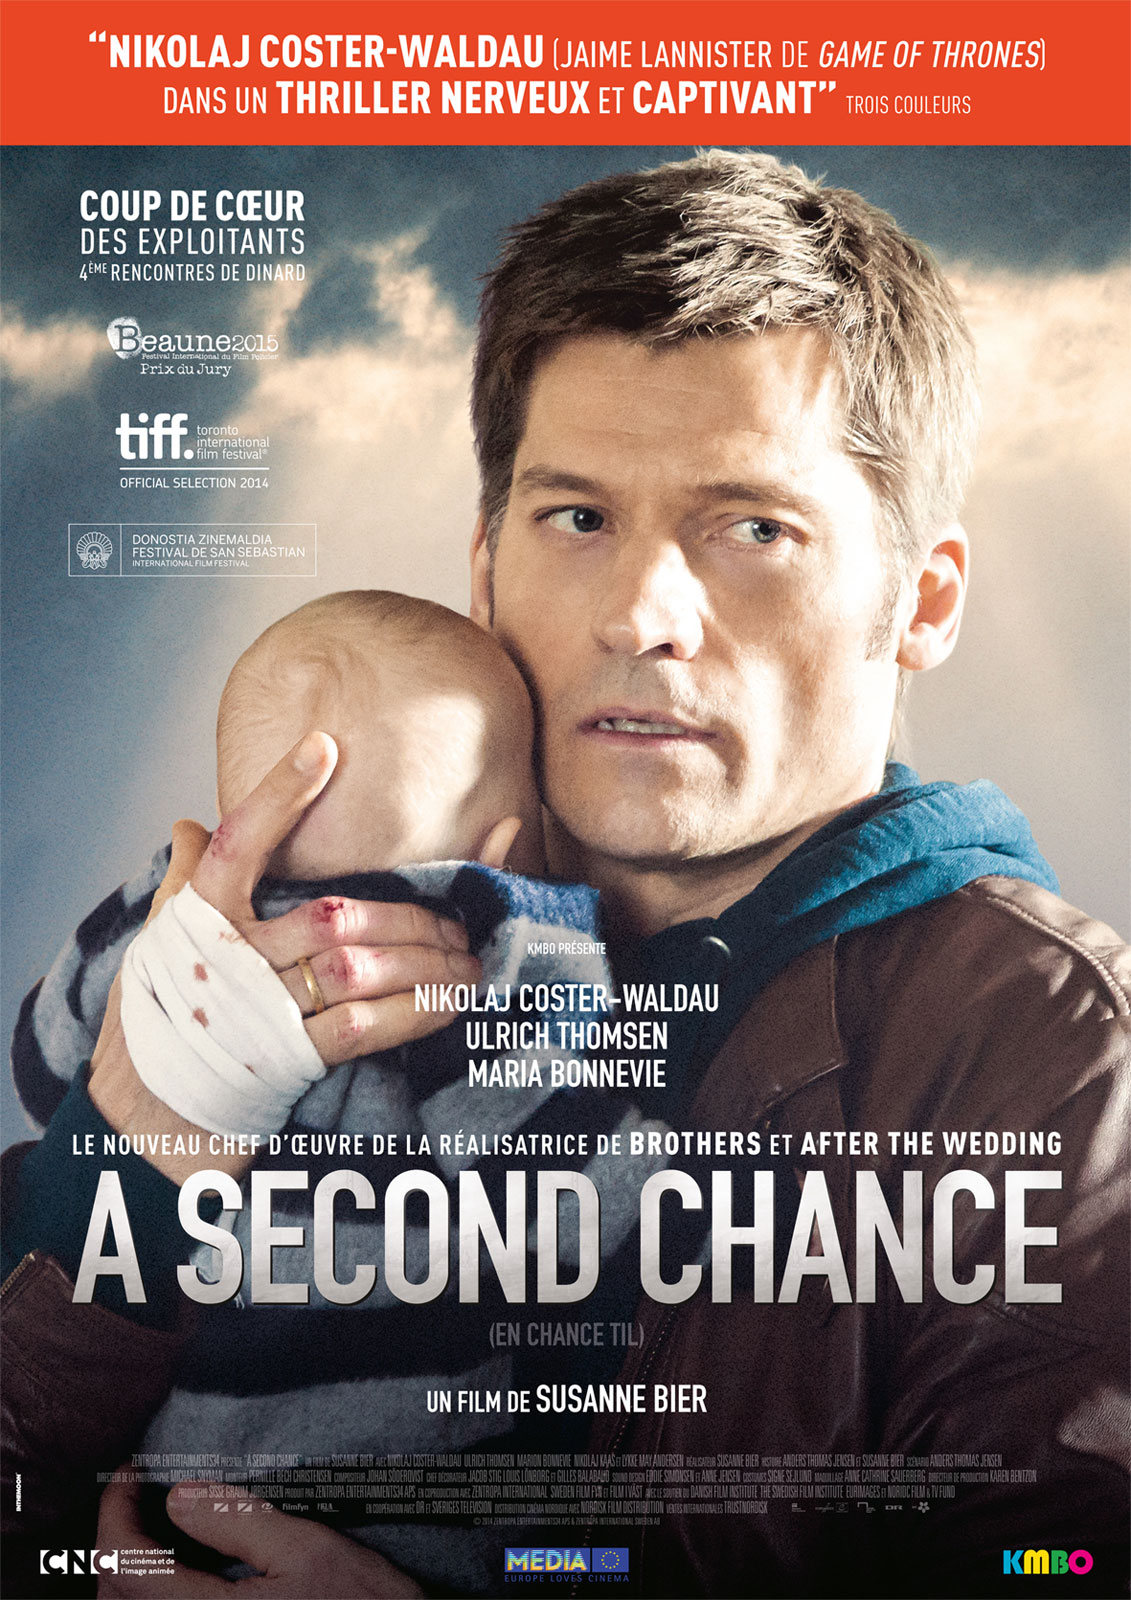 A second chance - Suzanne Blier